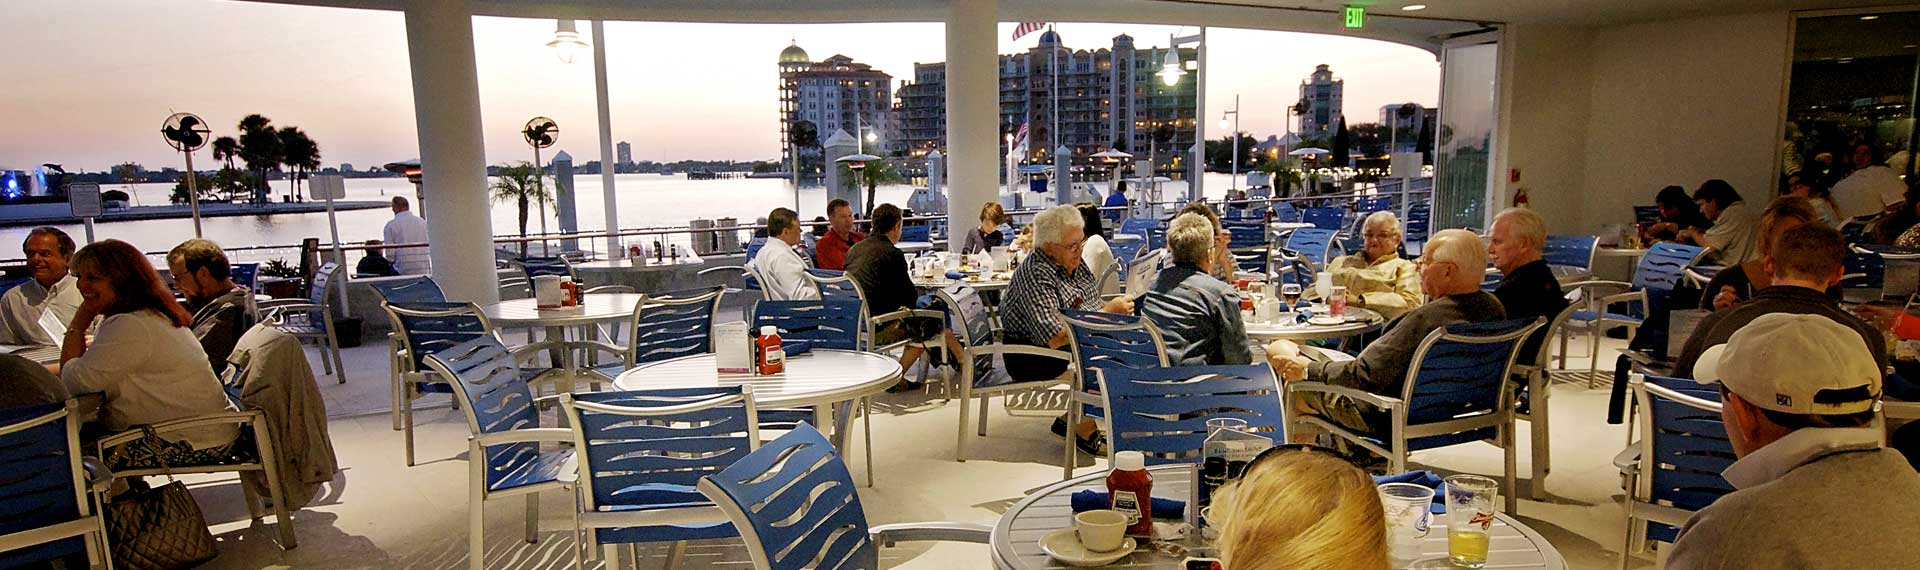 Sarasota Waterfront Bar & Live Music